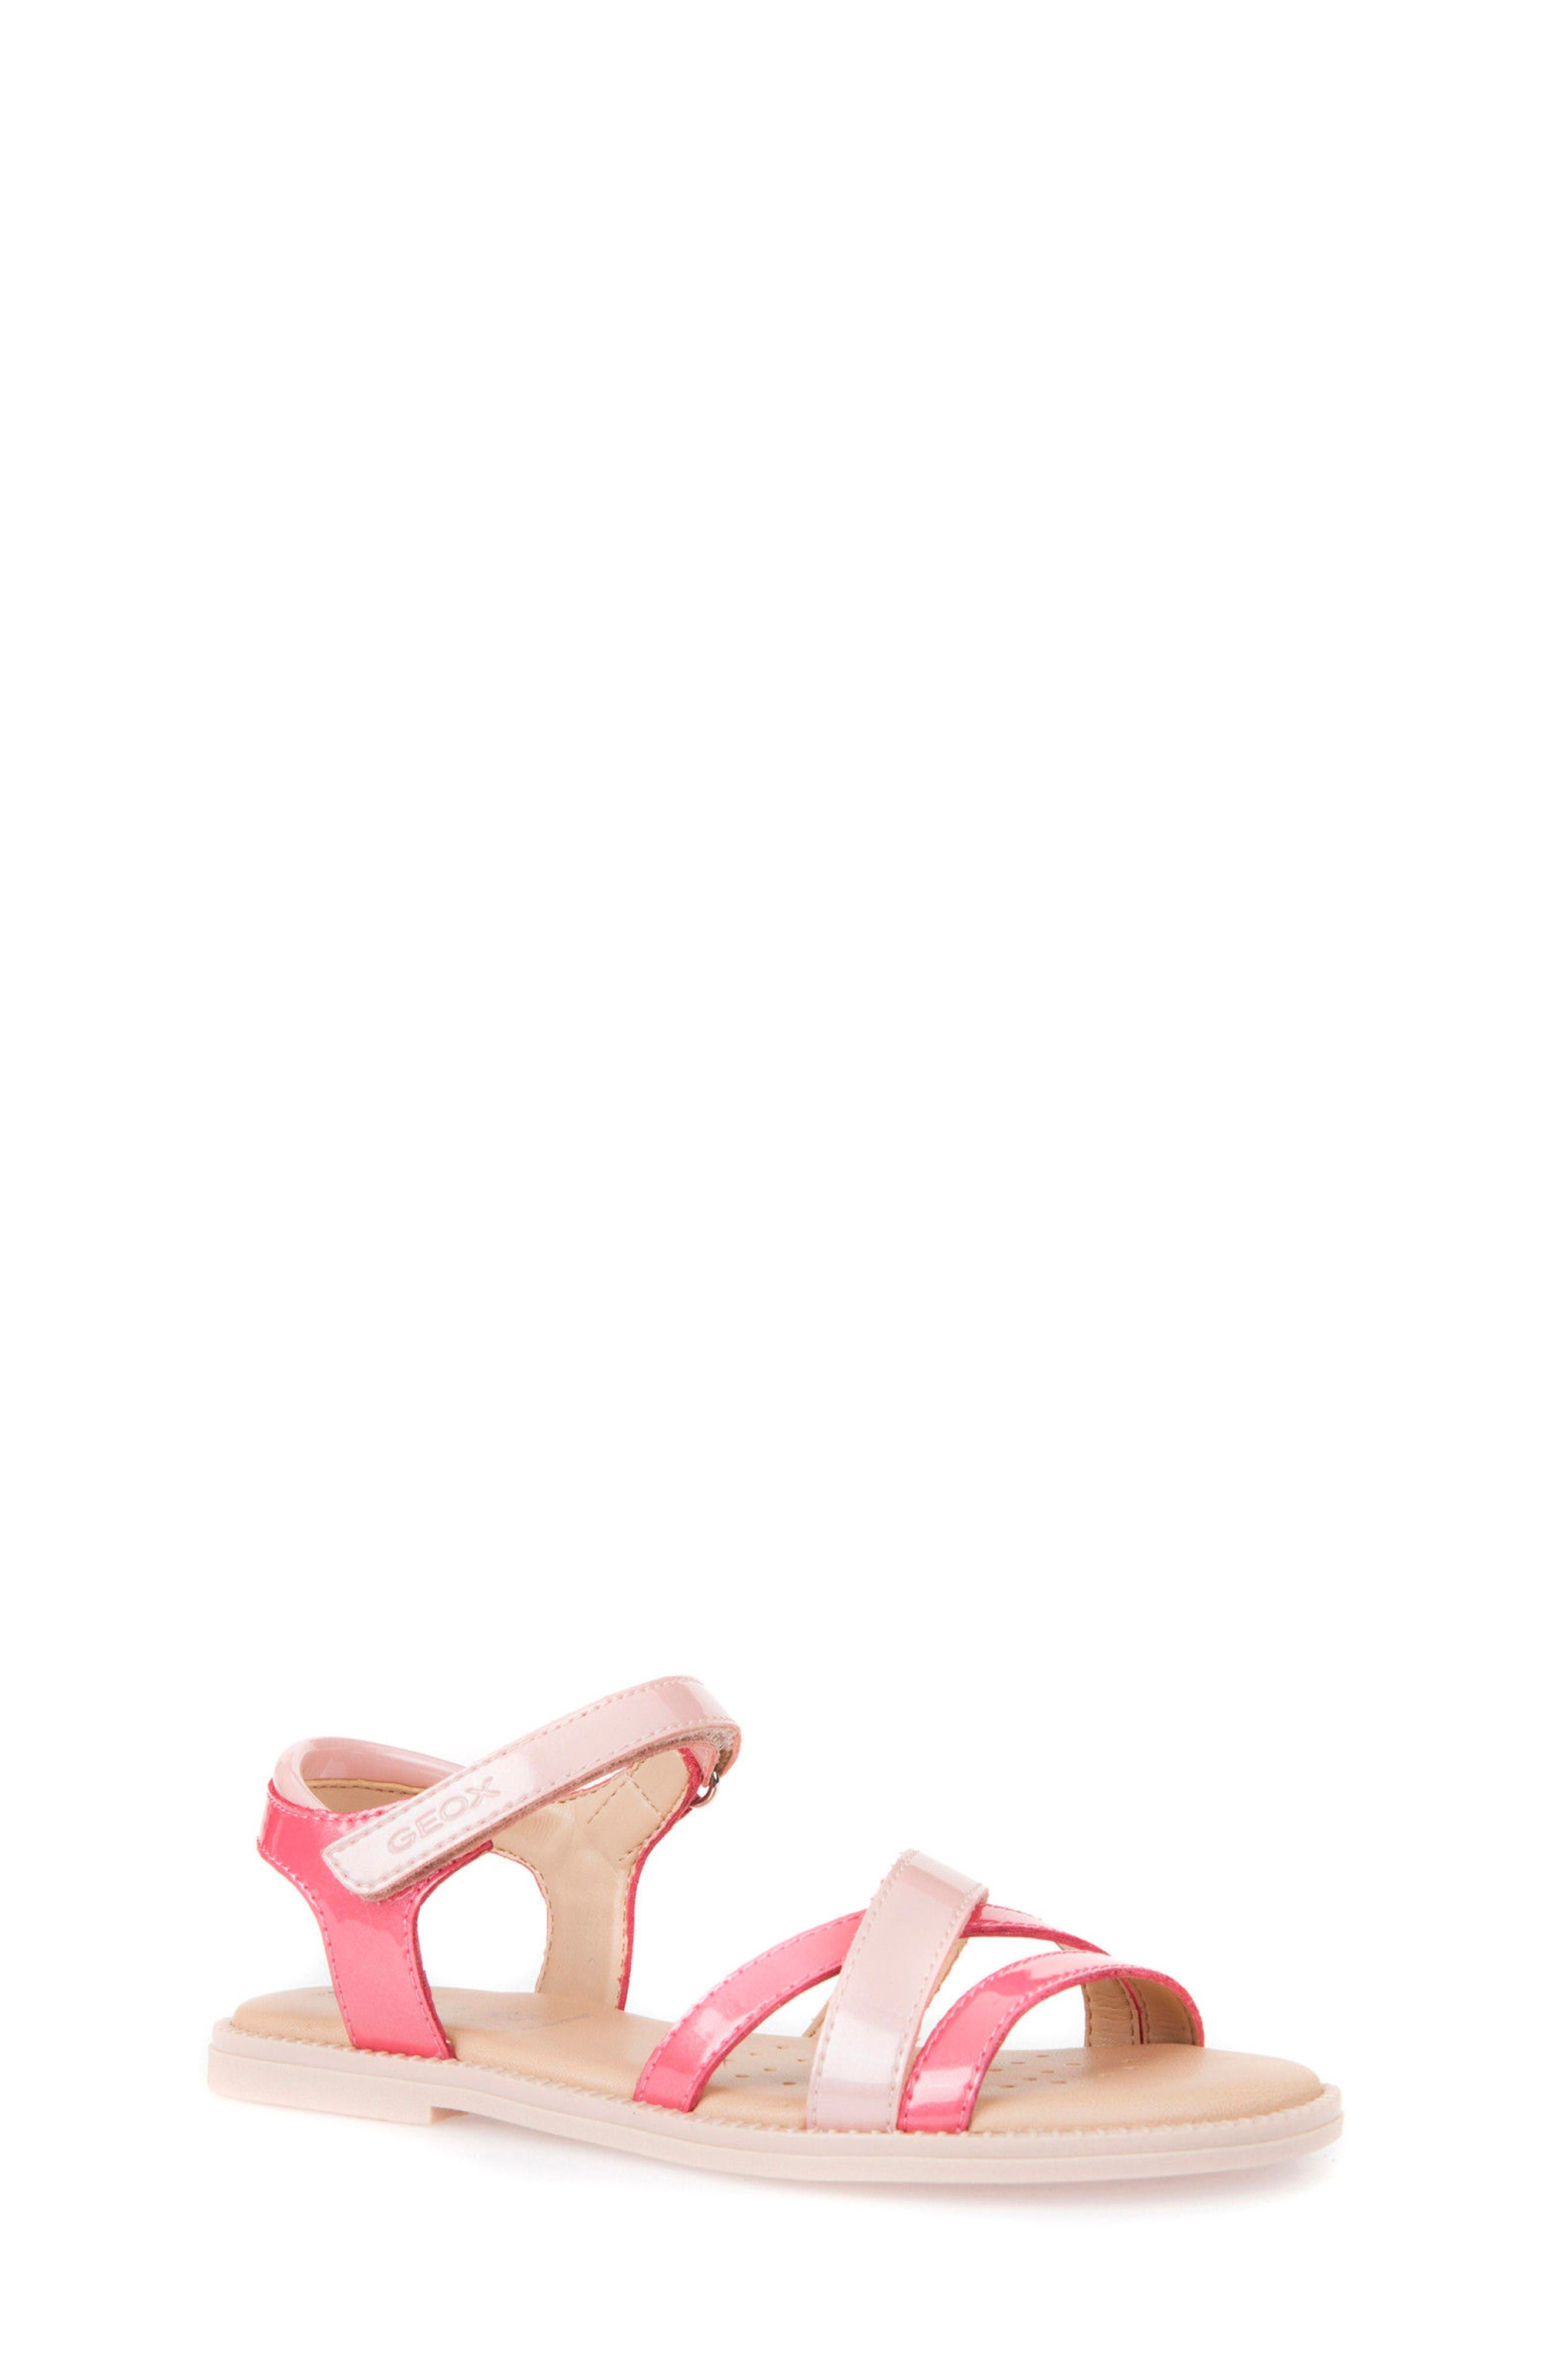 Karly Girl Sandal,                             Main thumbnail 1, color,                             Light Coral/ Rose